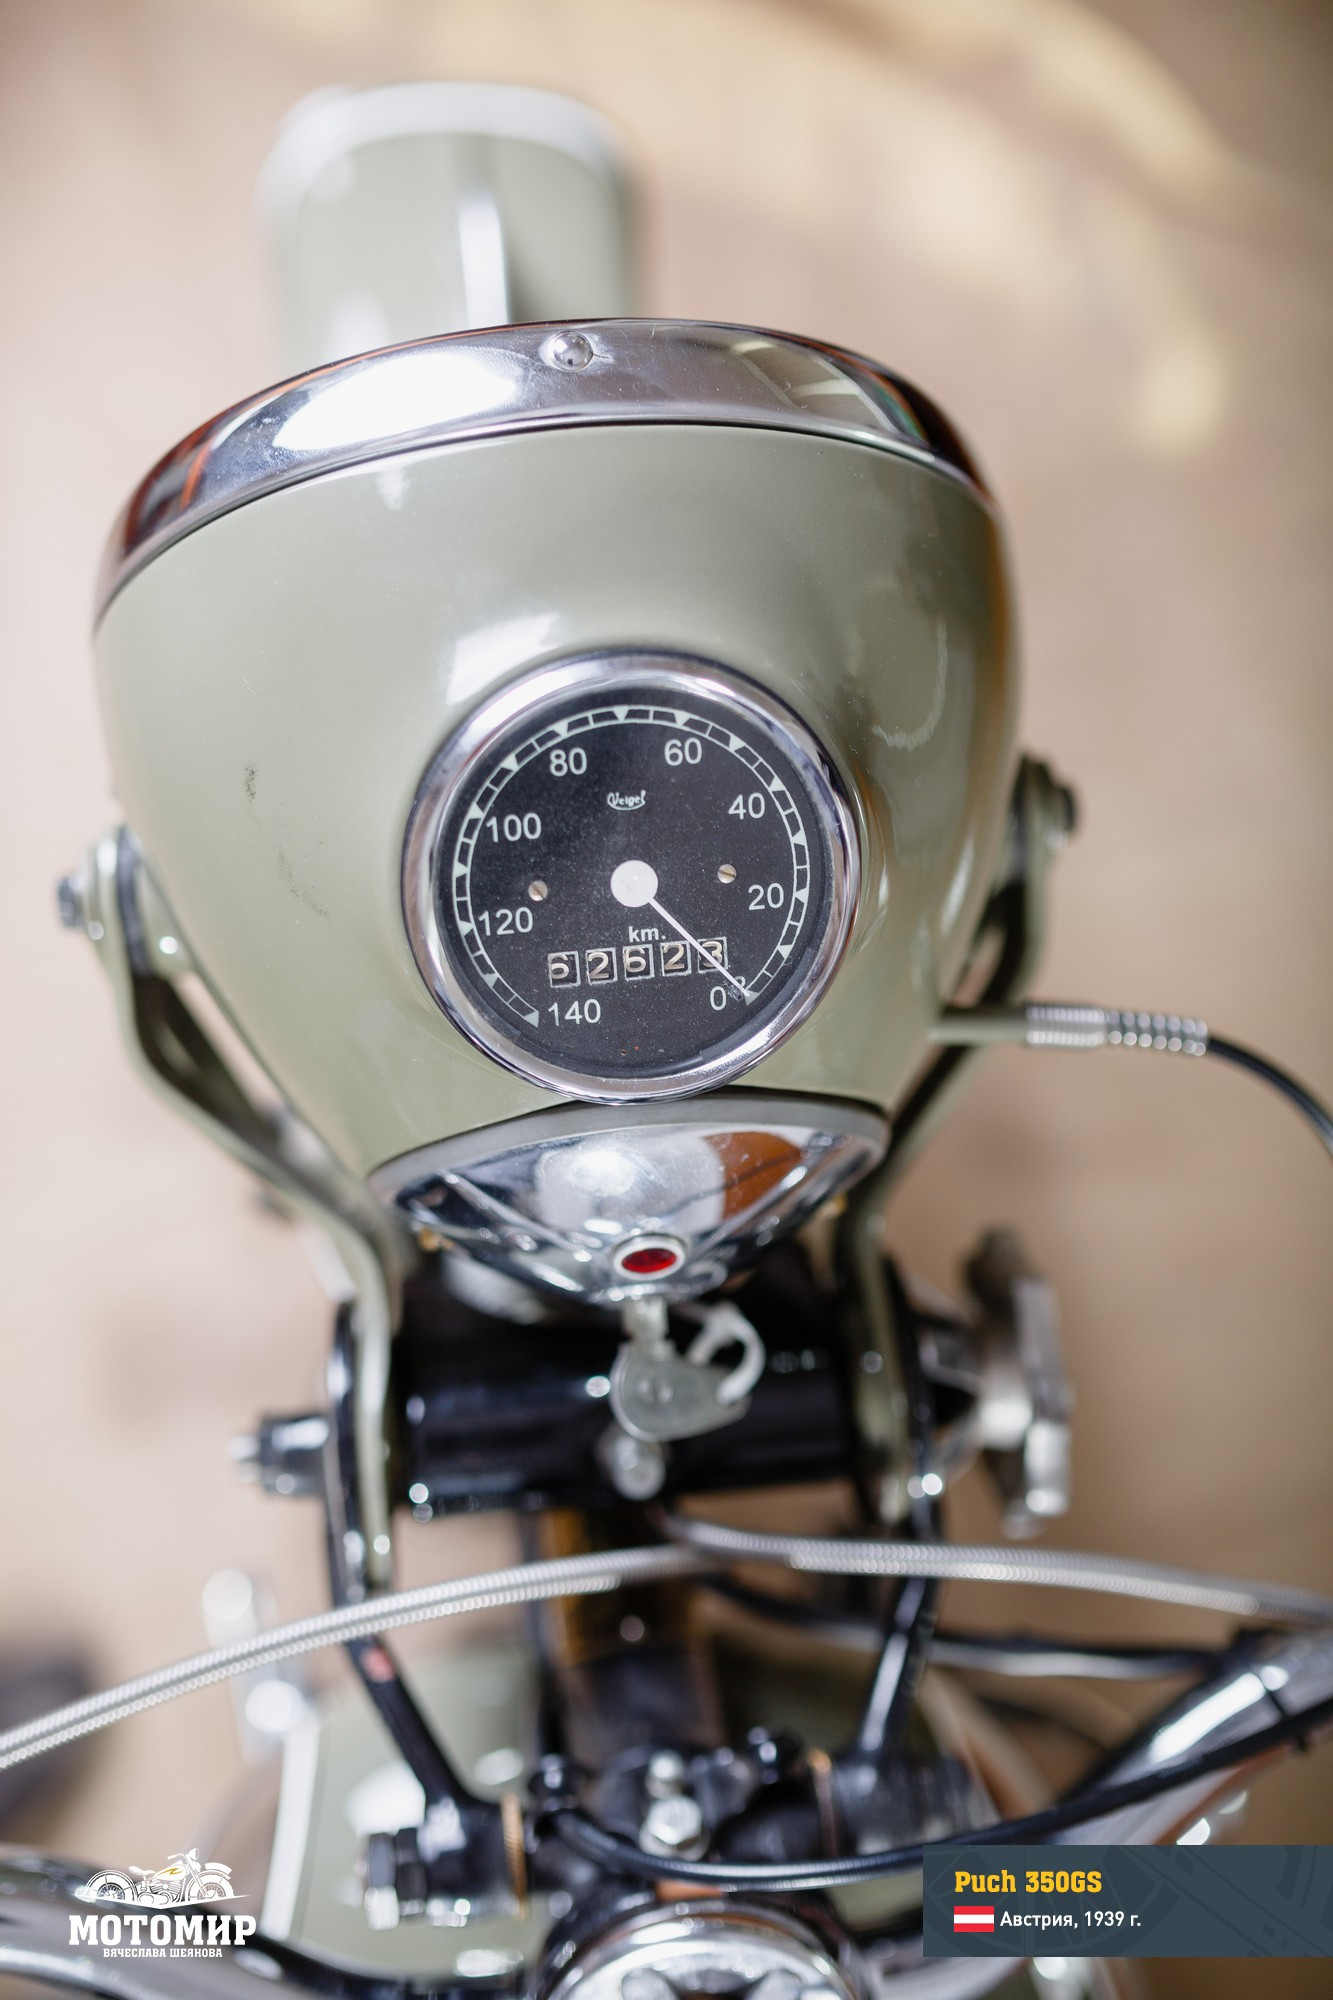 puch-350gs-201601-web-36